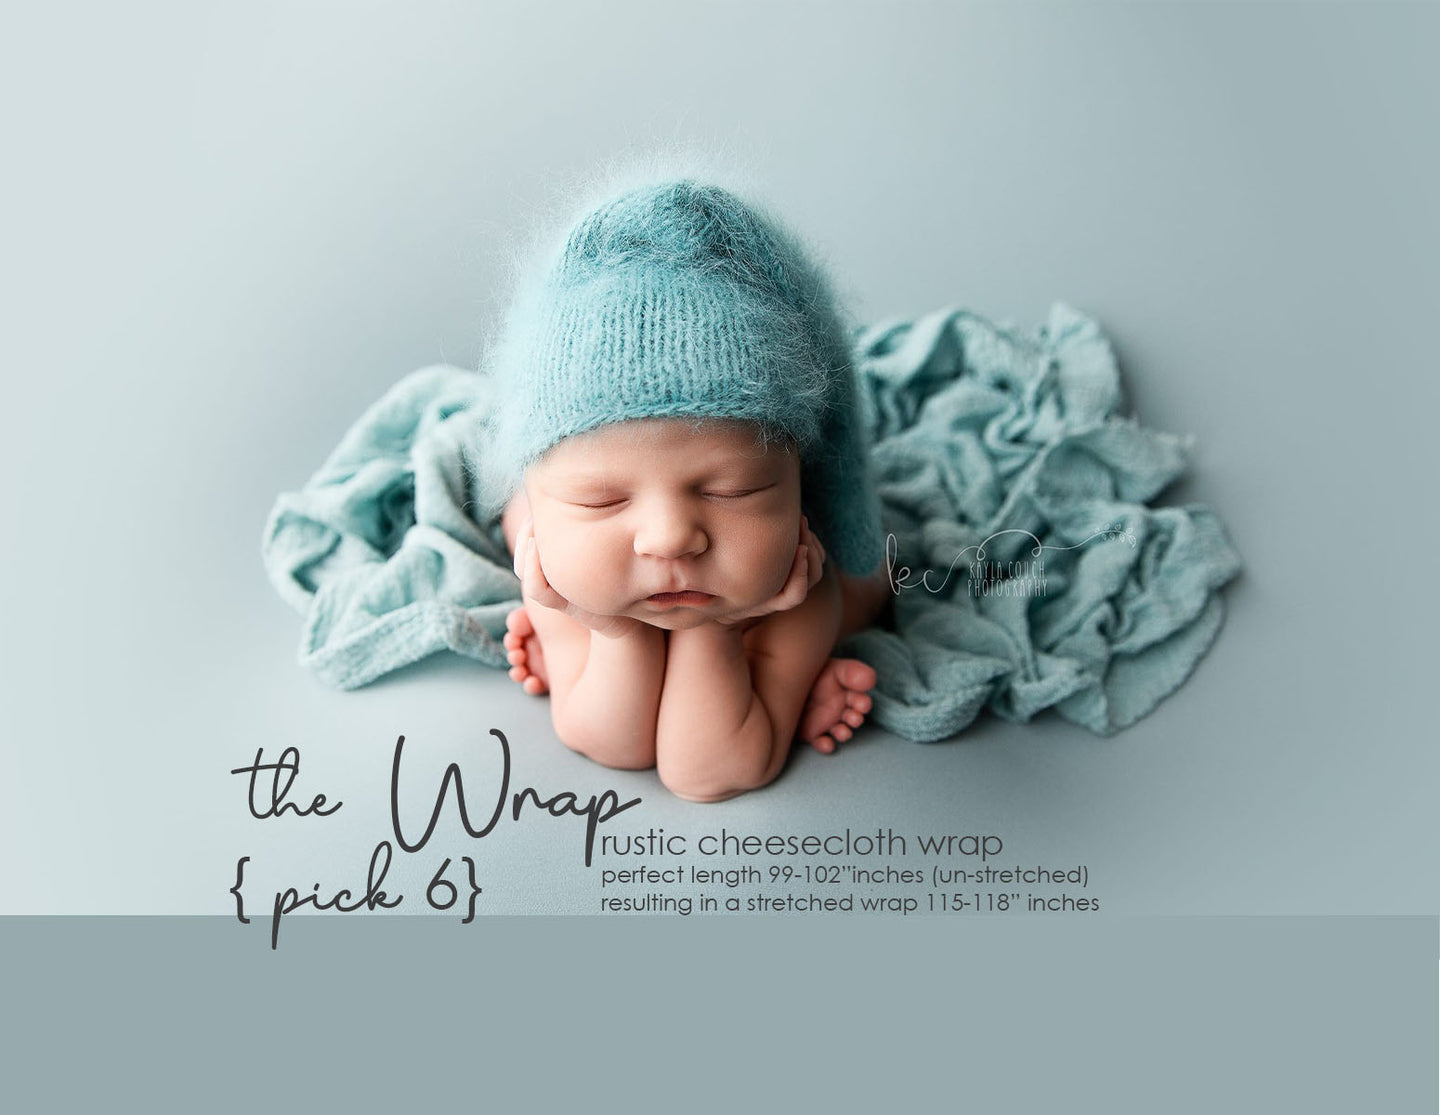 the WRAP(long) - Rustic Cheesecloth Wrap - 99-102